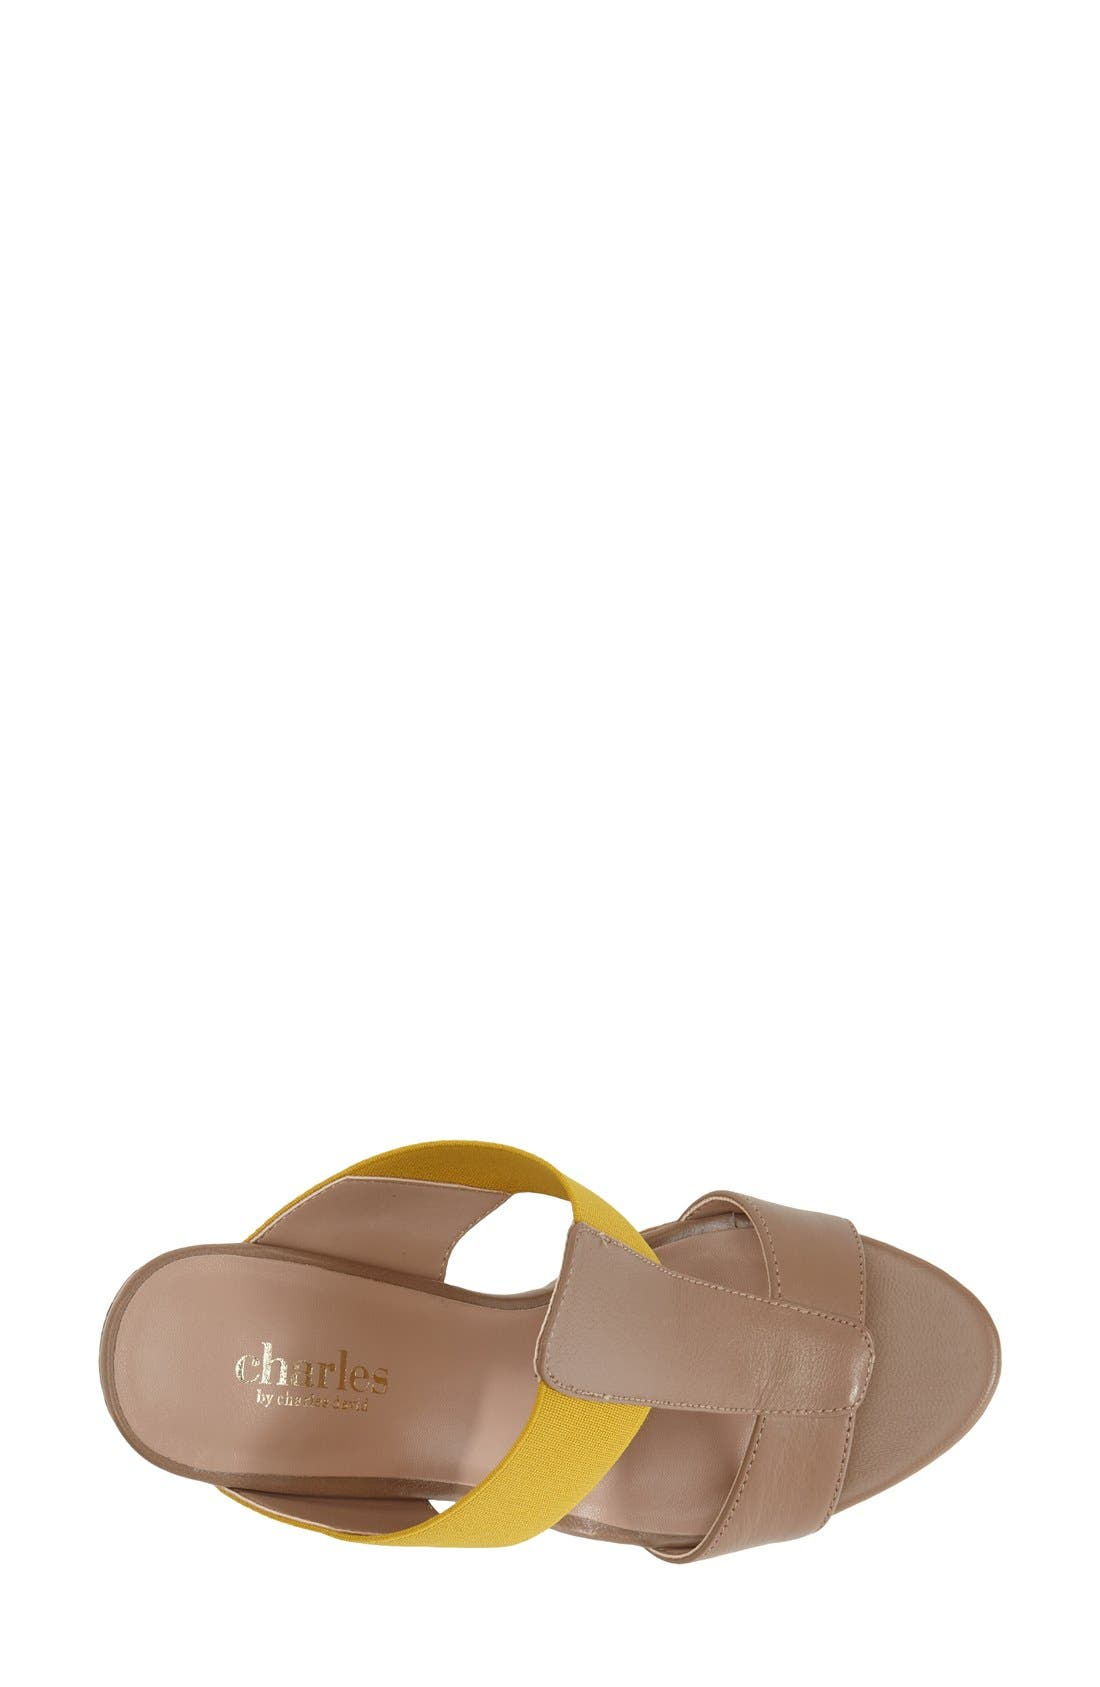 Alternate Image 3  - Charles by Charles David 'Alto' Espadrille Wedge Sandal (Women)